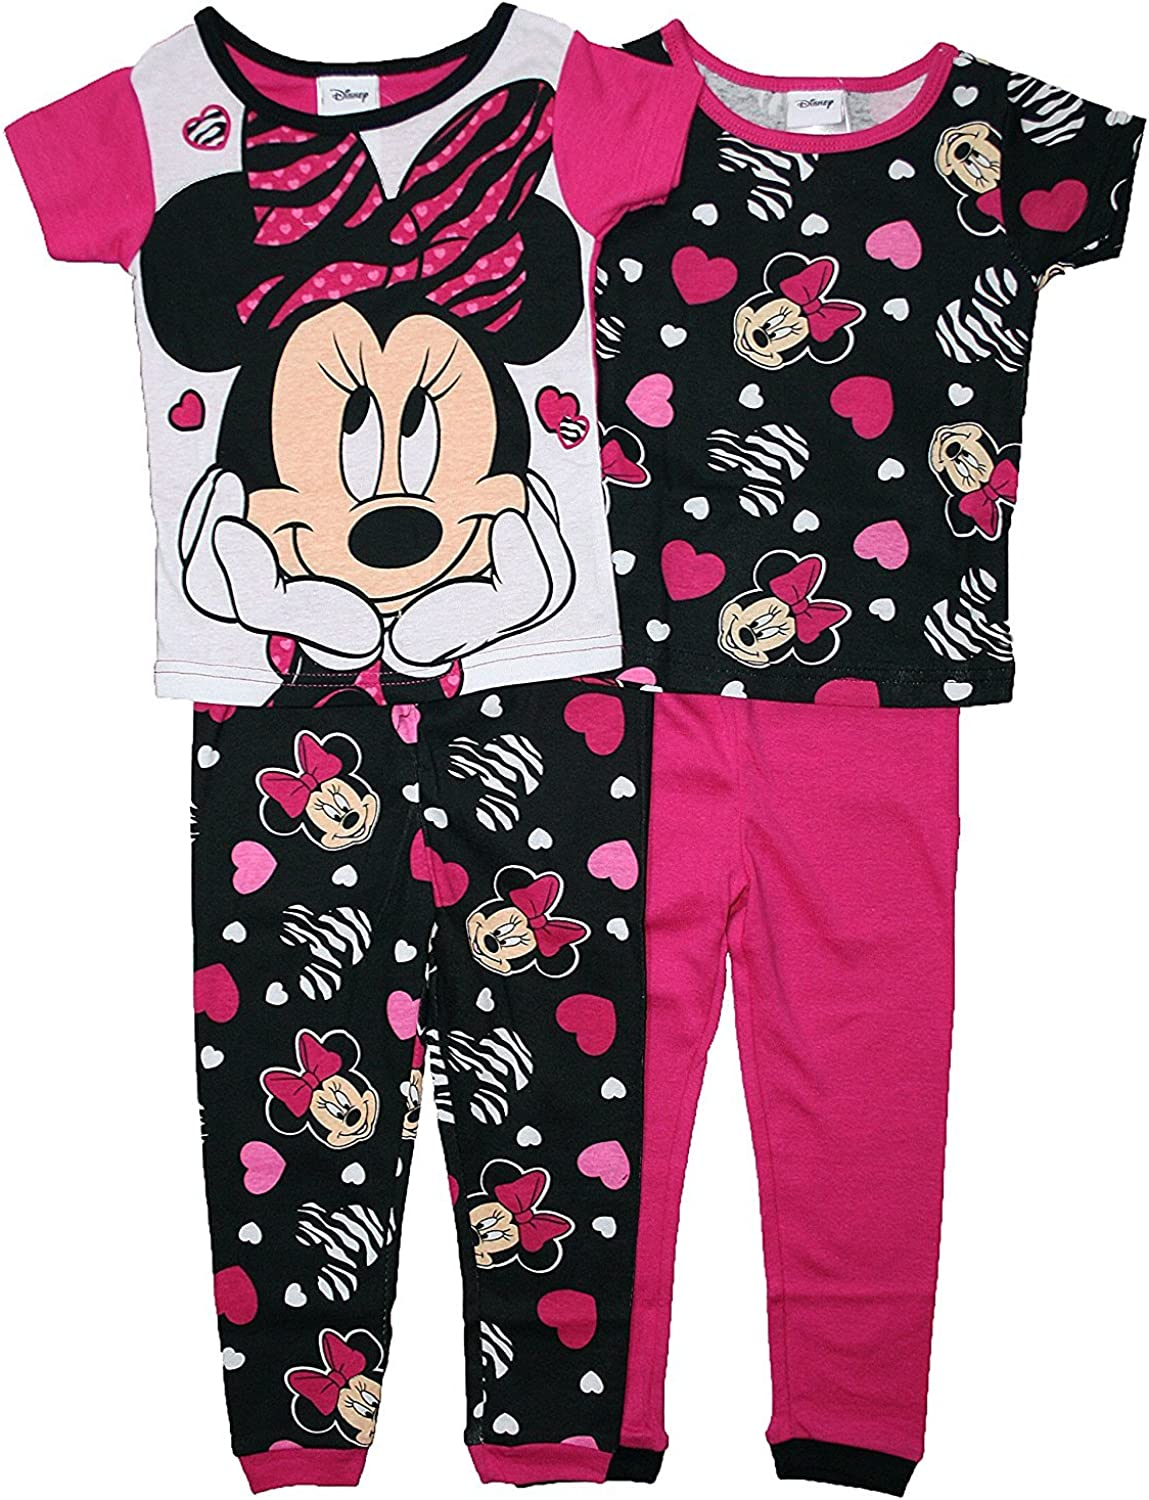 Disney Minnie Mouse Girl 4PC Short Sleeve Tight Fit Cotton Pajama Set Size 3T